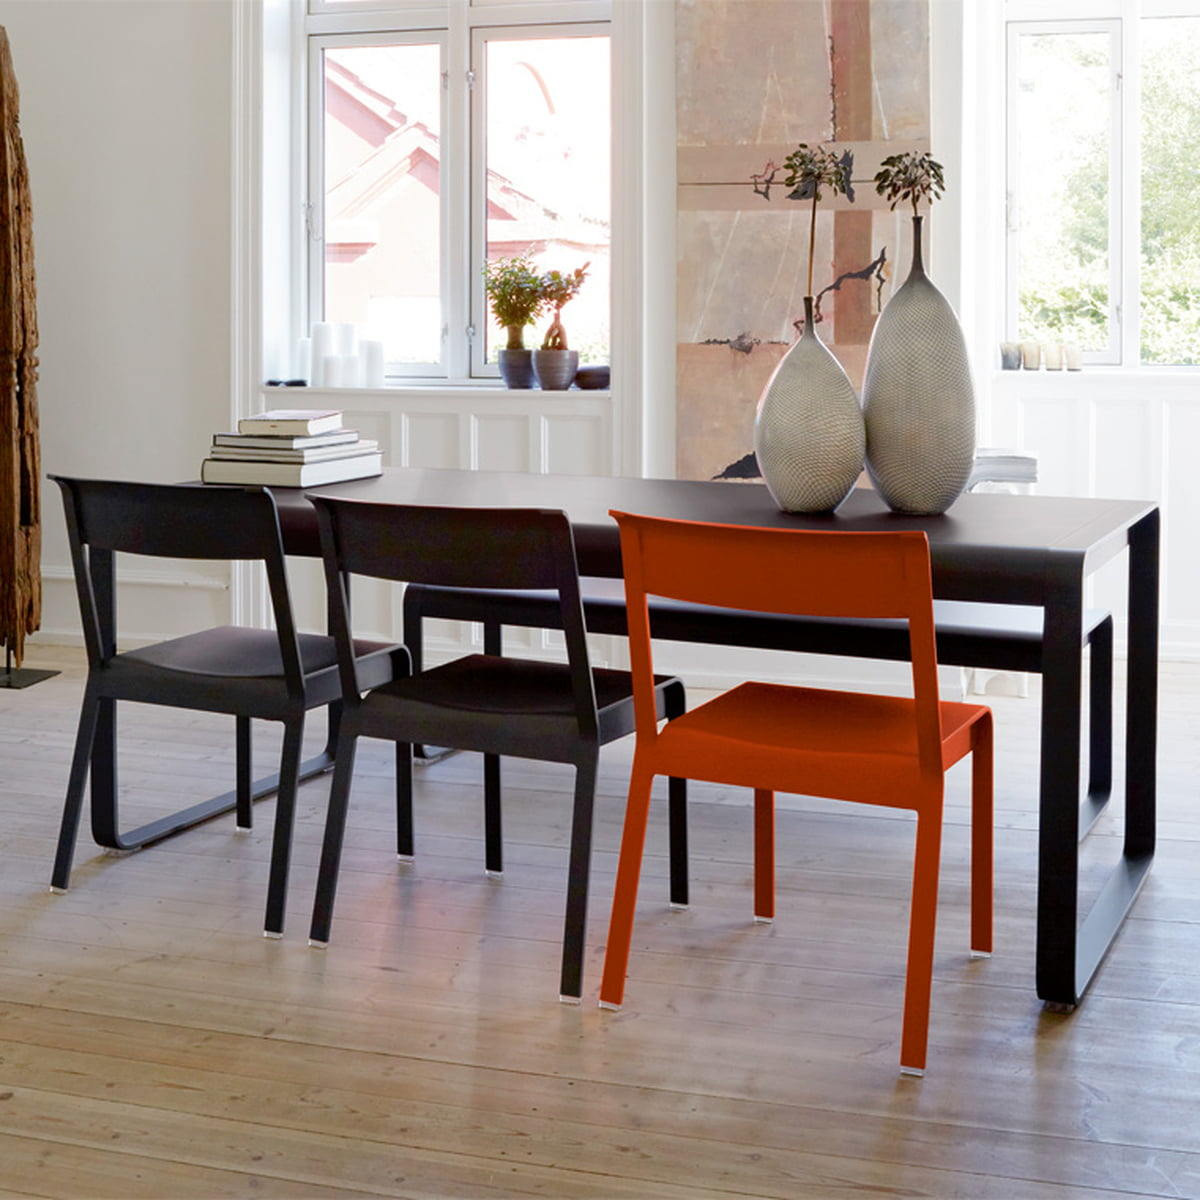 bellevie garden chair by fermob in the shop. Black Bedroom Furniture Sets. Home Design Ideas